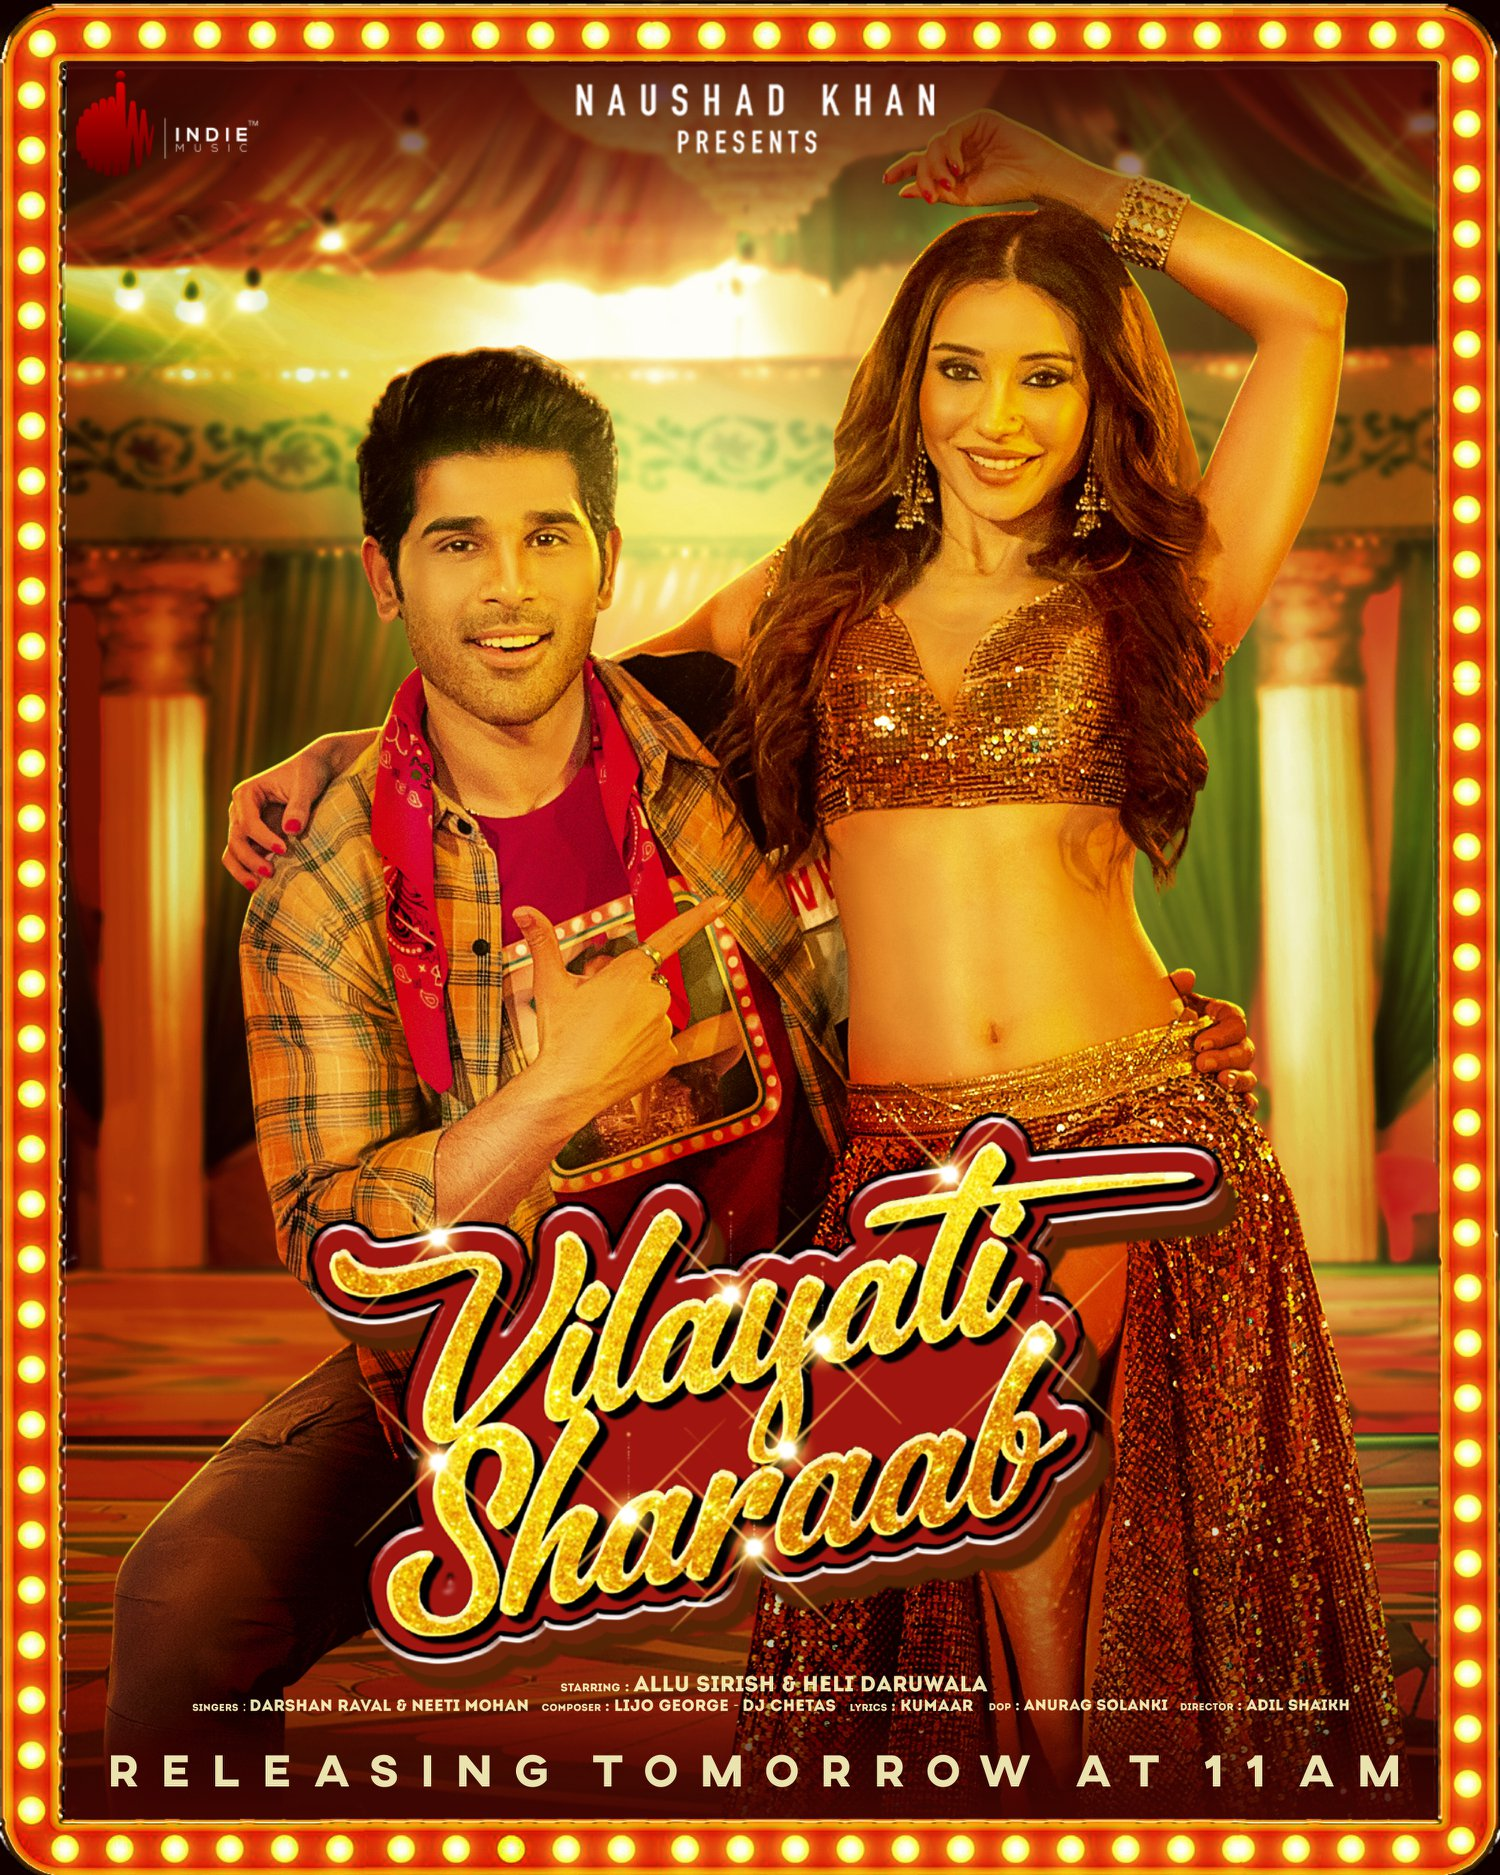 Vilayati Sharaab (2021) Hindi Official Music Video Ft. Allu Sirish & Heli Daruwala HD 1080p